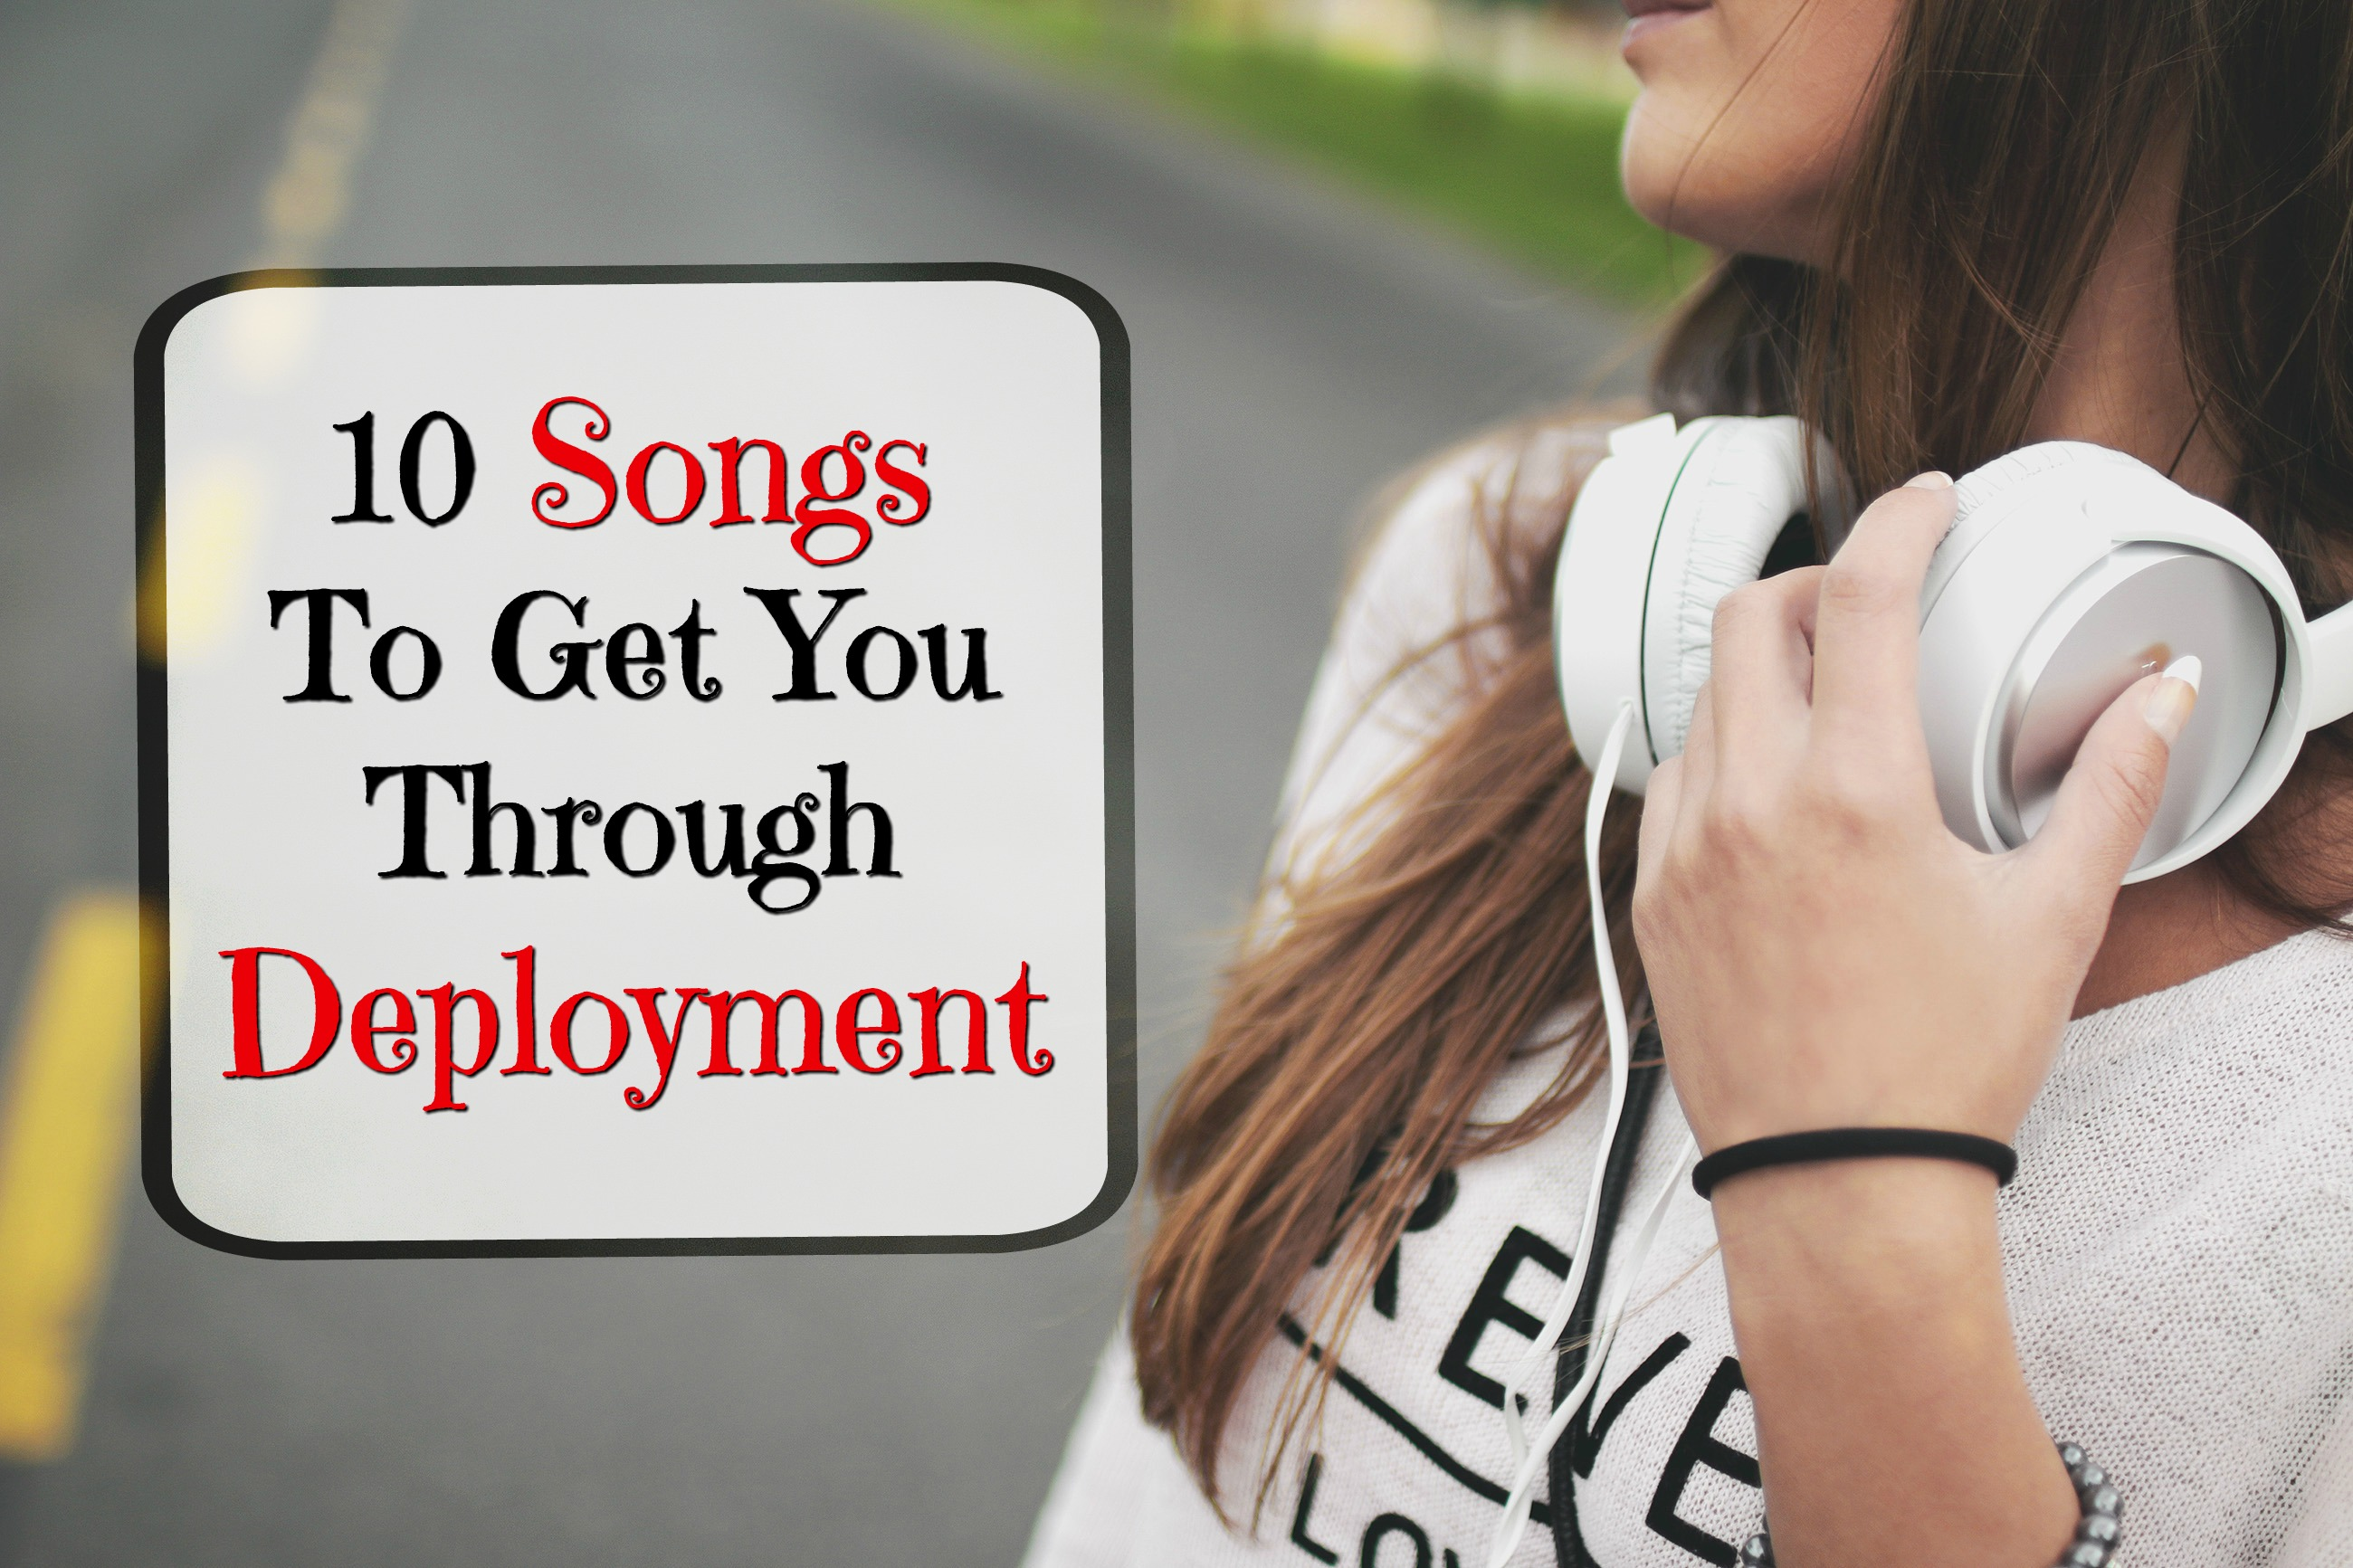 10 Songs To Get You Through Deployment